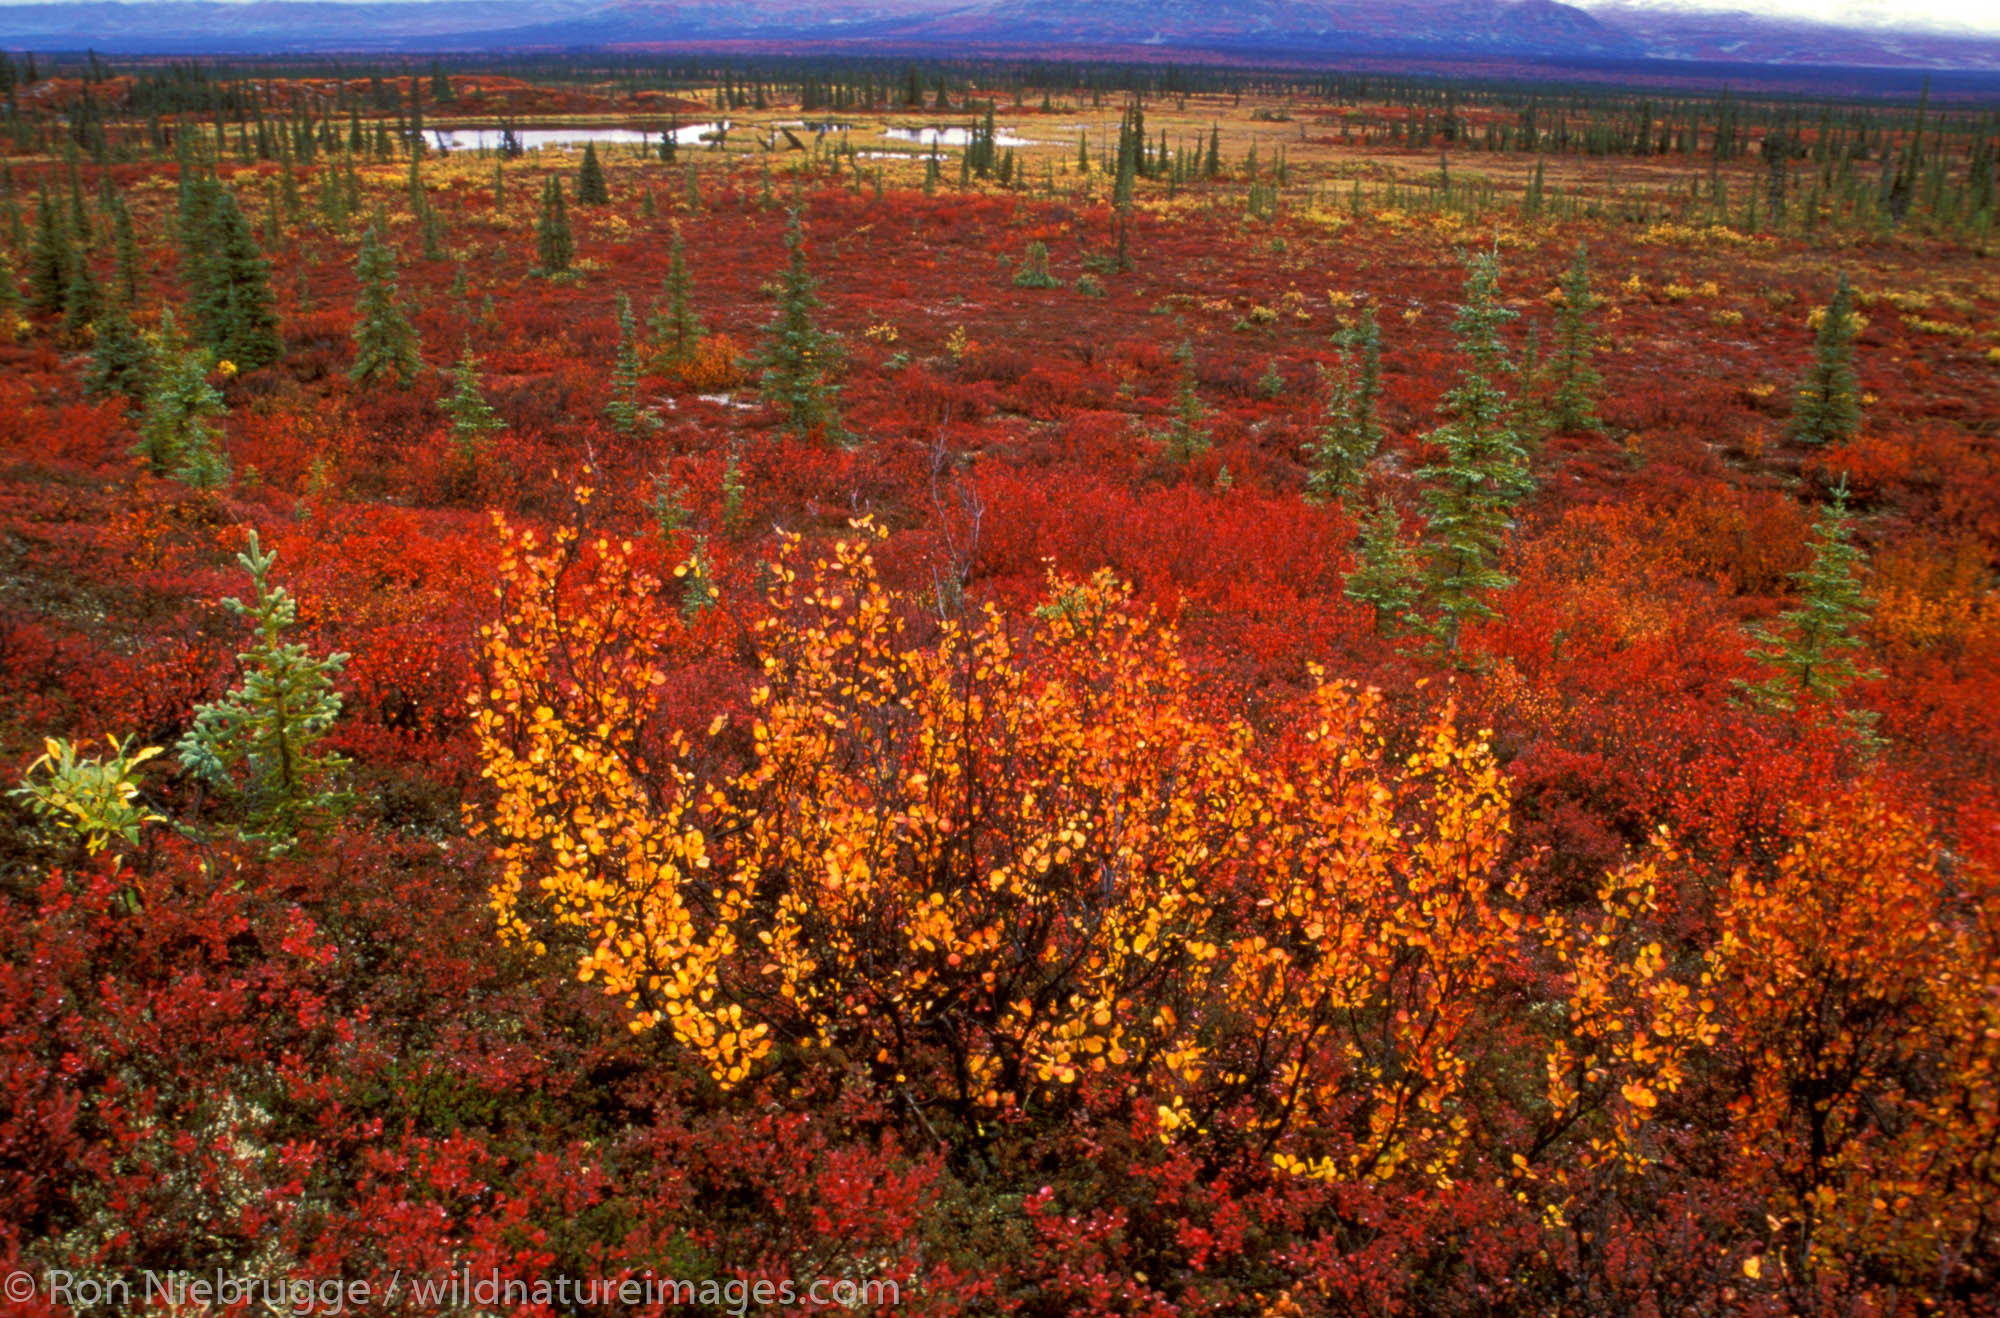 The Boreal or Taiga forest during fall from along the Denali Highway, Alaska.